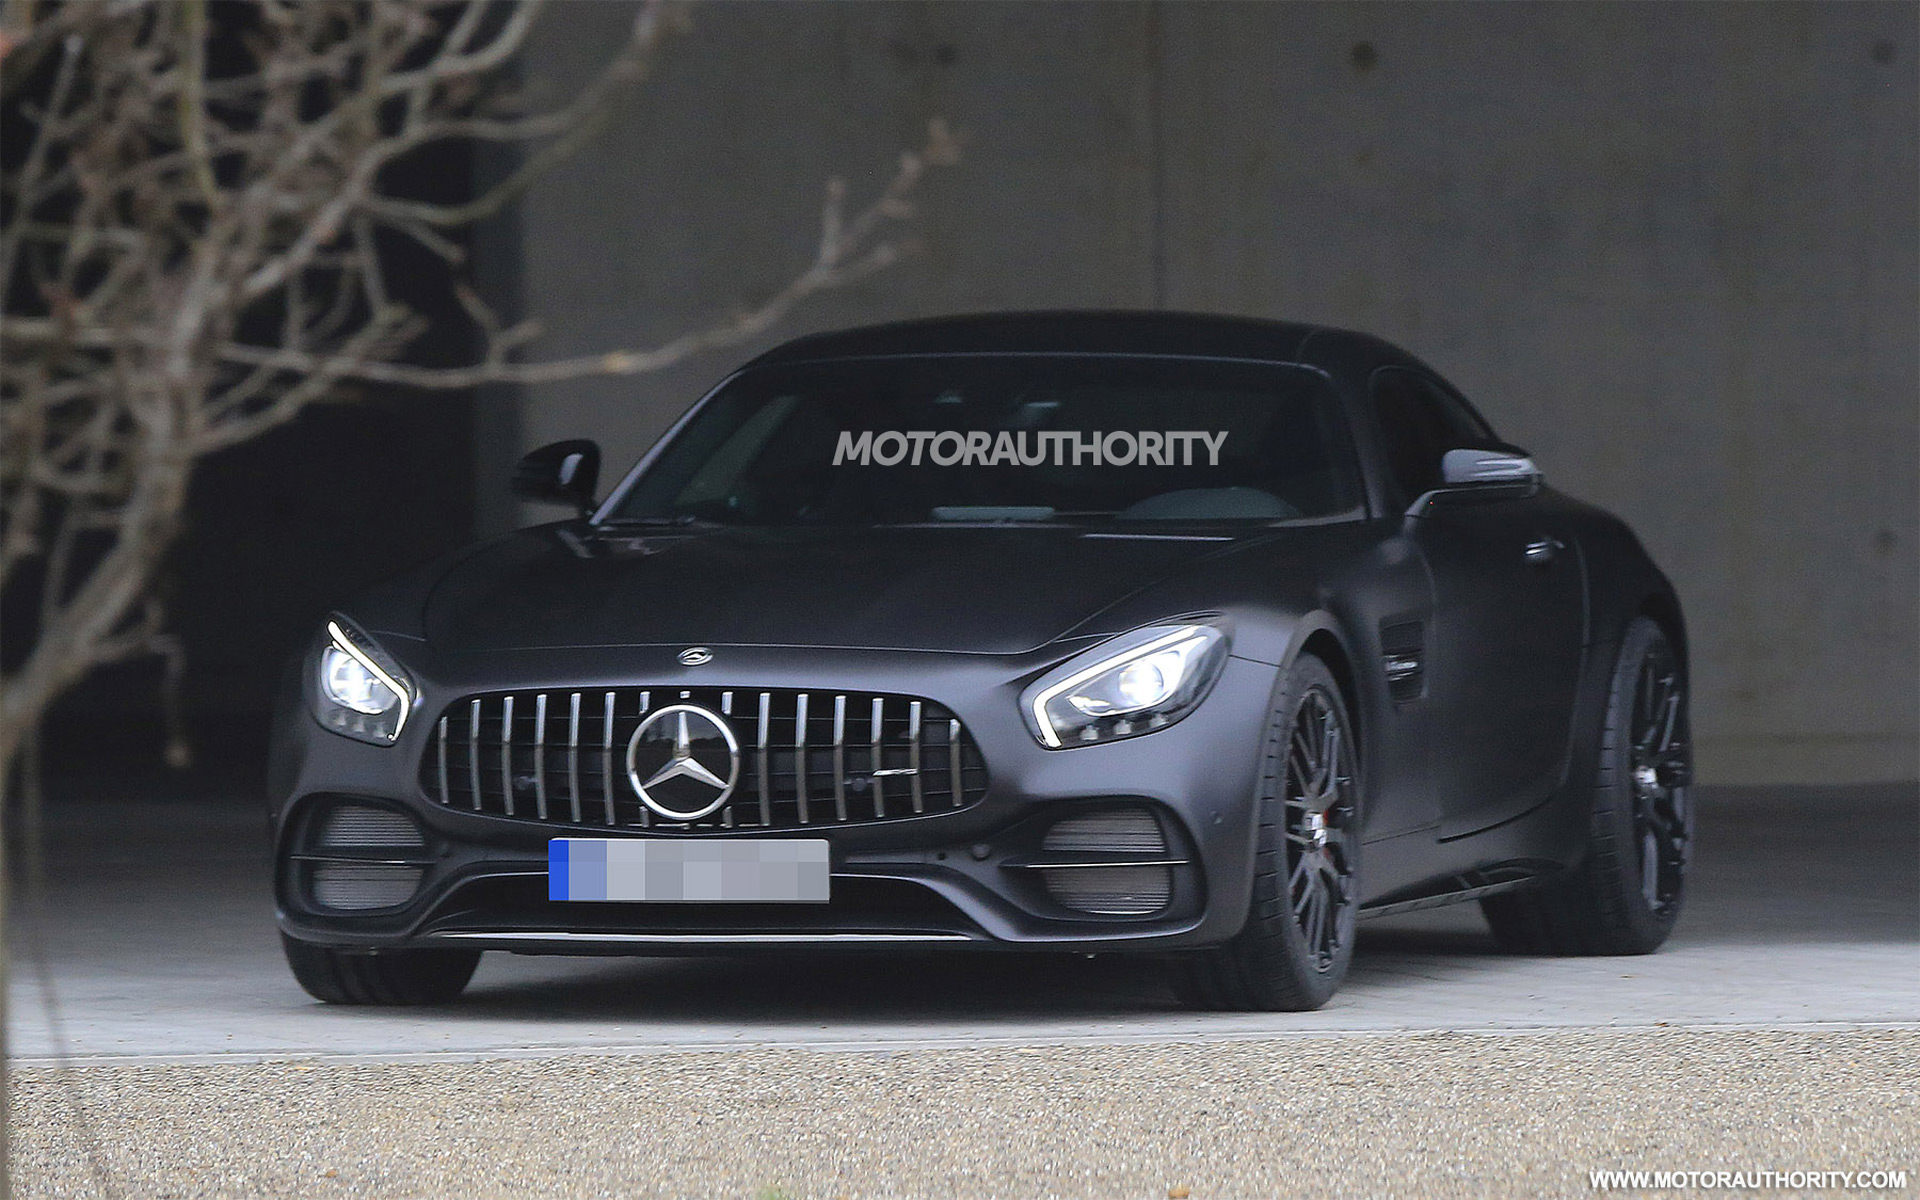 2018 Mercedes-AMG GT C spy shots